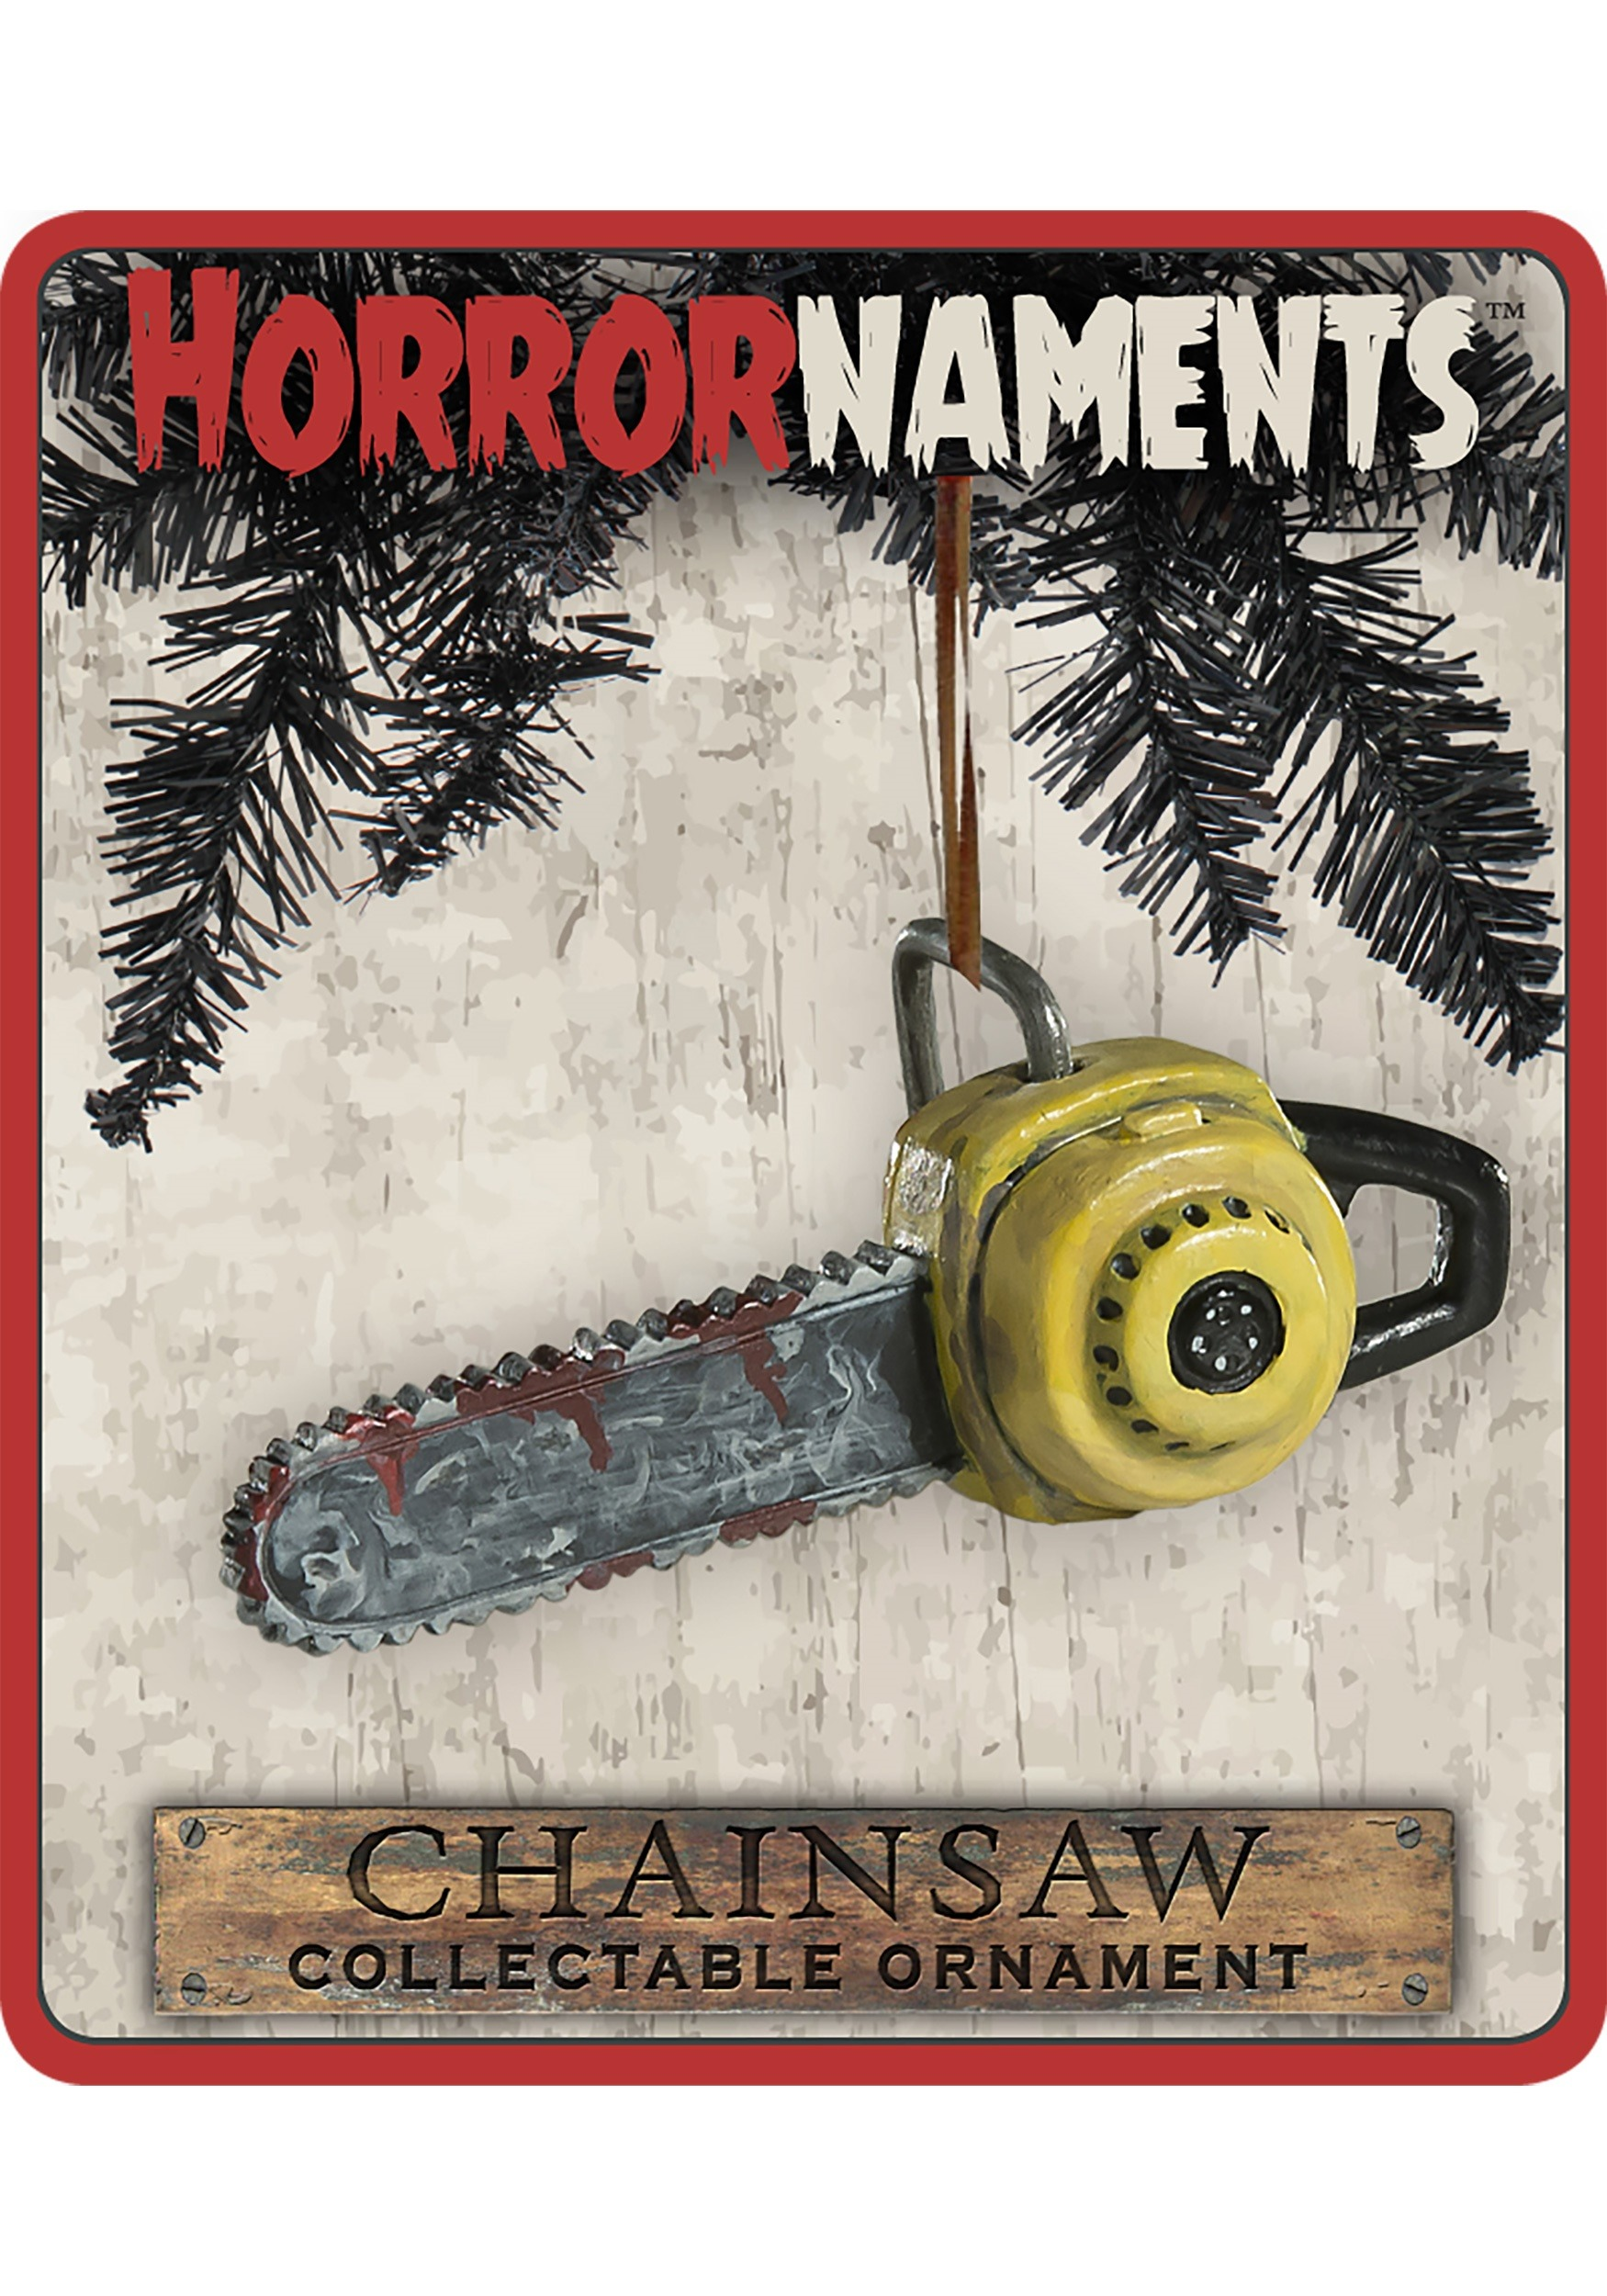 Chainsaw Horrornaments Molded Ornament